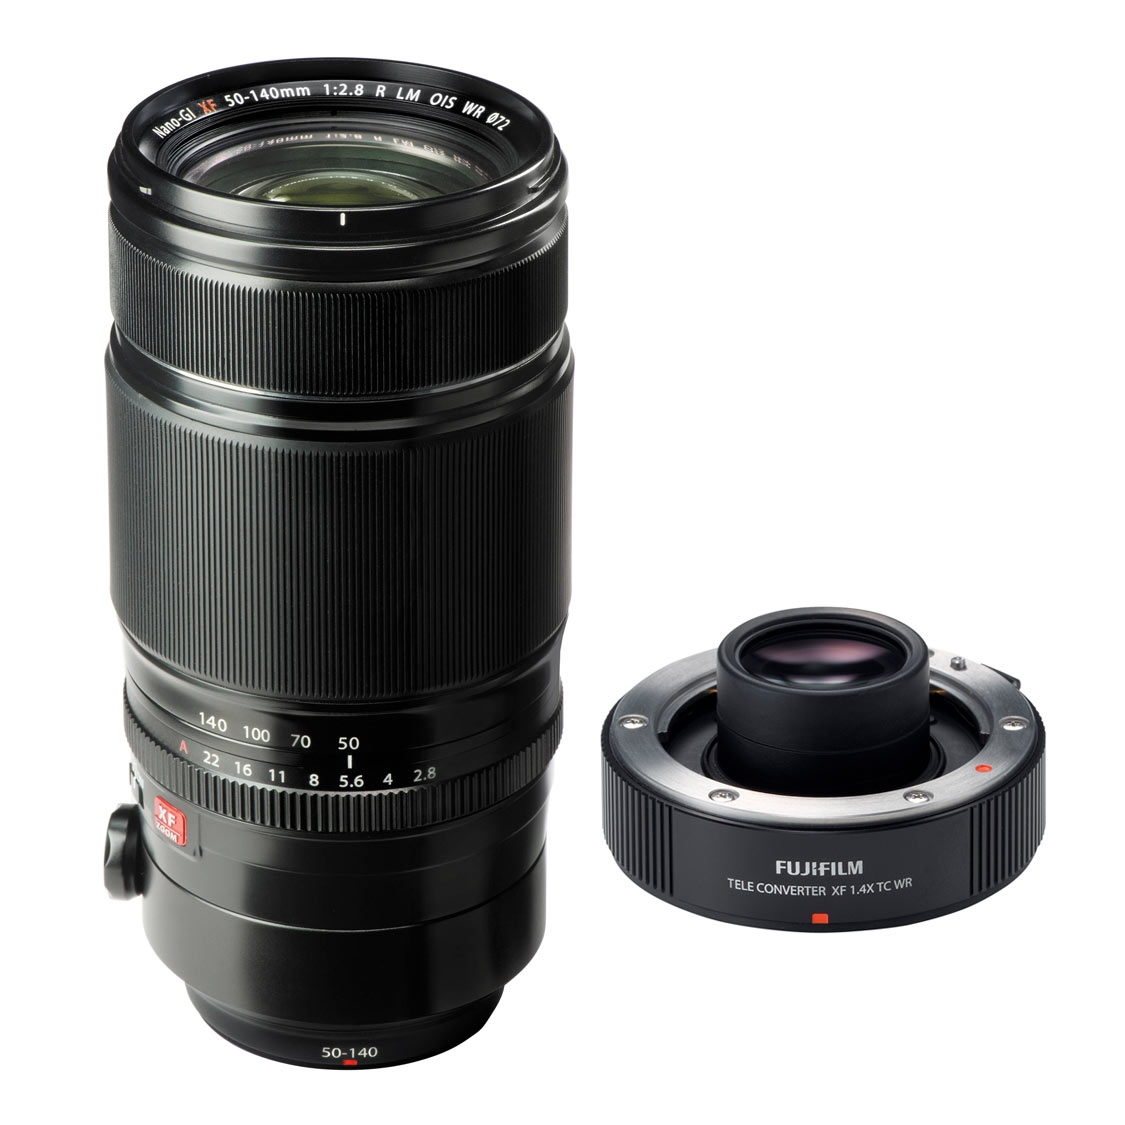 Fujifilm XF 50-140mm F2.8 R LM OIS WR Lens and 1.4x Teleconverter